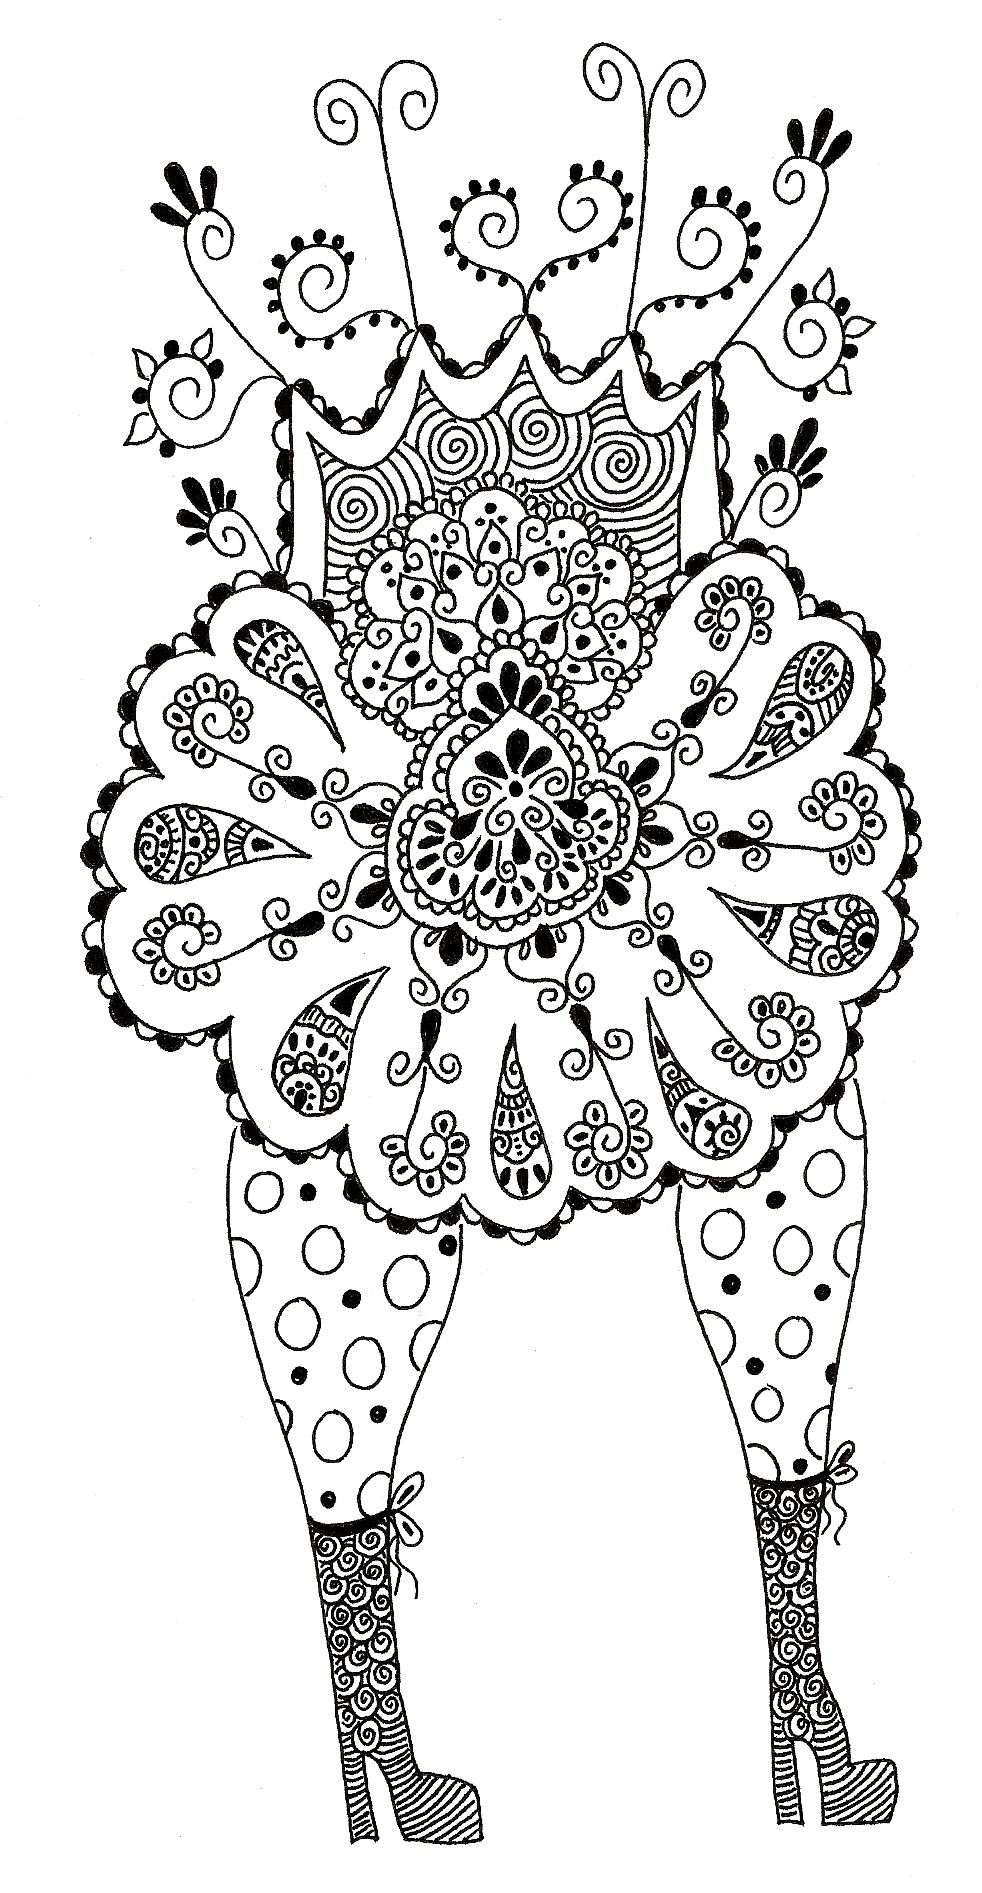 Day 1070 Walking On Springtime Doodle Coloring Coloring Pages Doodles